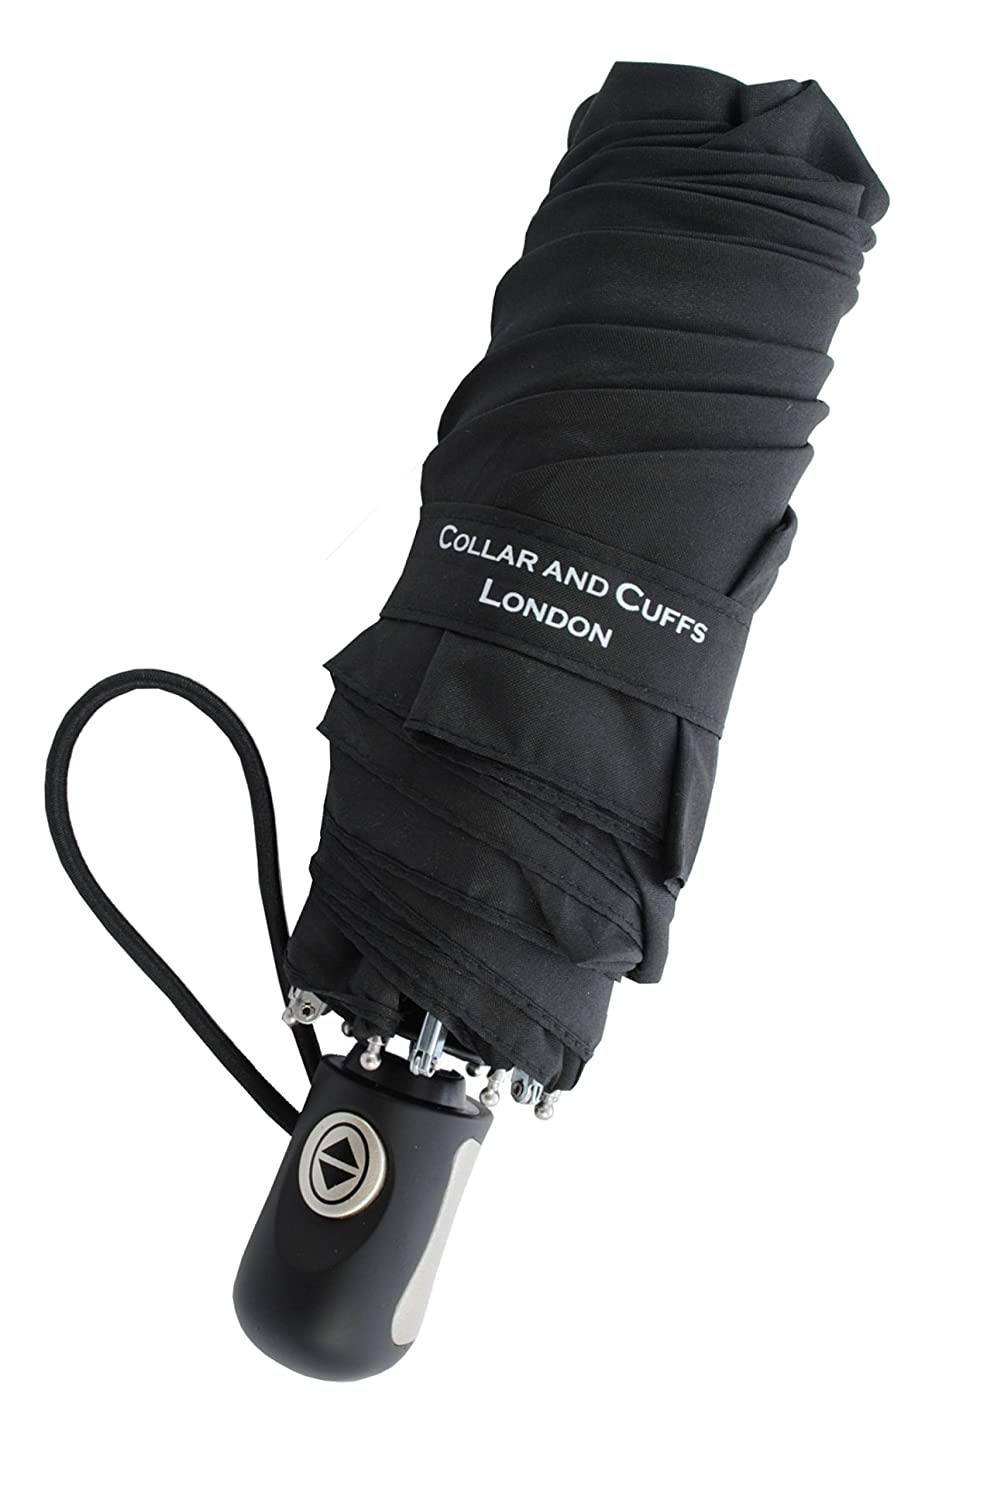 Collar and Cuffs London - Windproof Strong - Rare Mini Umbrella with AUTO Open and Close - Just 21cm When Closed - Compact Folding Umbrella - Small - Black CCLSTORMPUMB10265